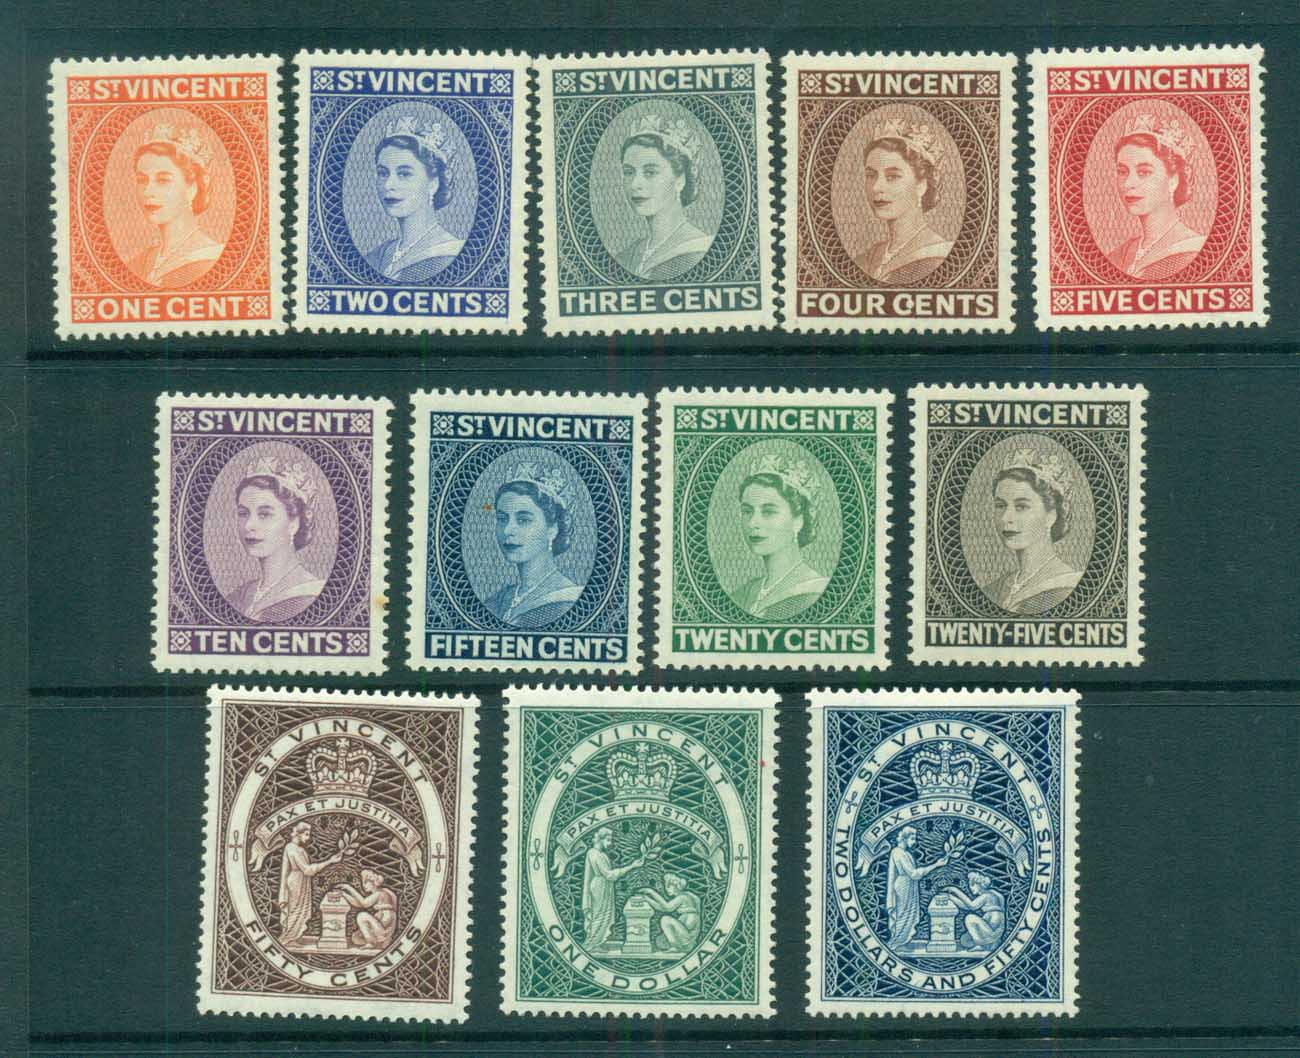 St Vincent 1955 QEII Defins Wmk Crown Script CA MUH lot72904